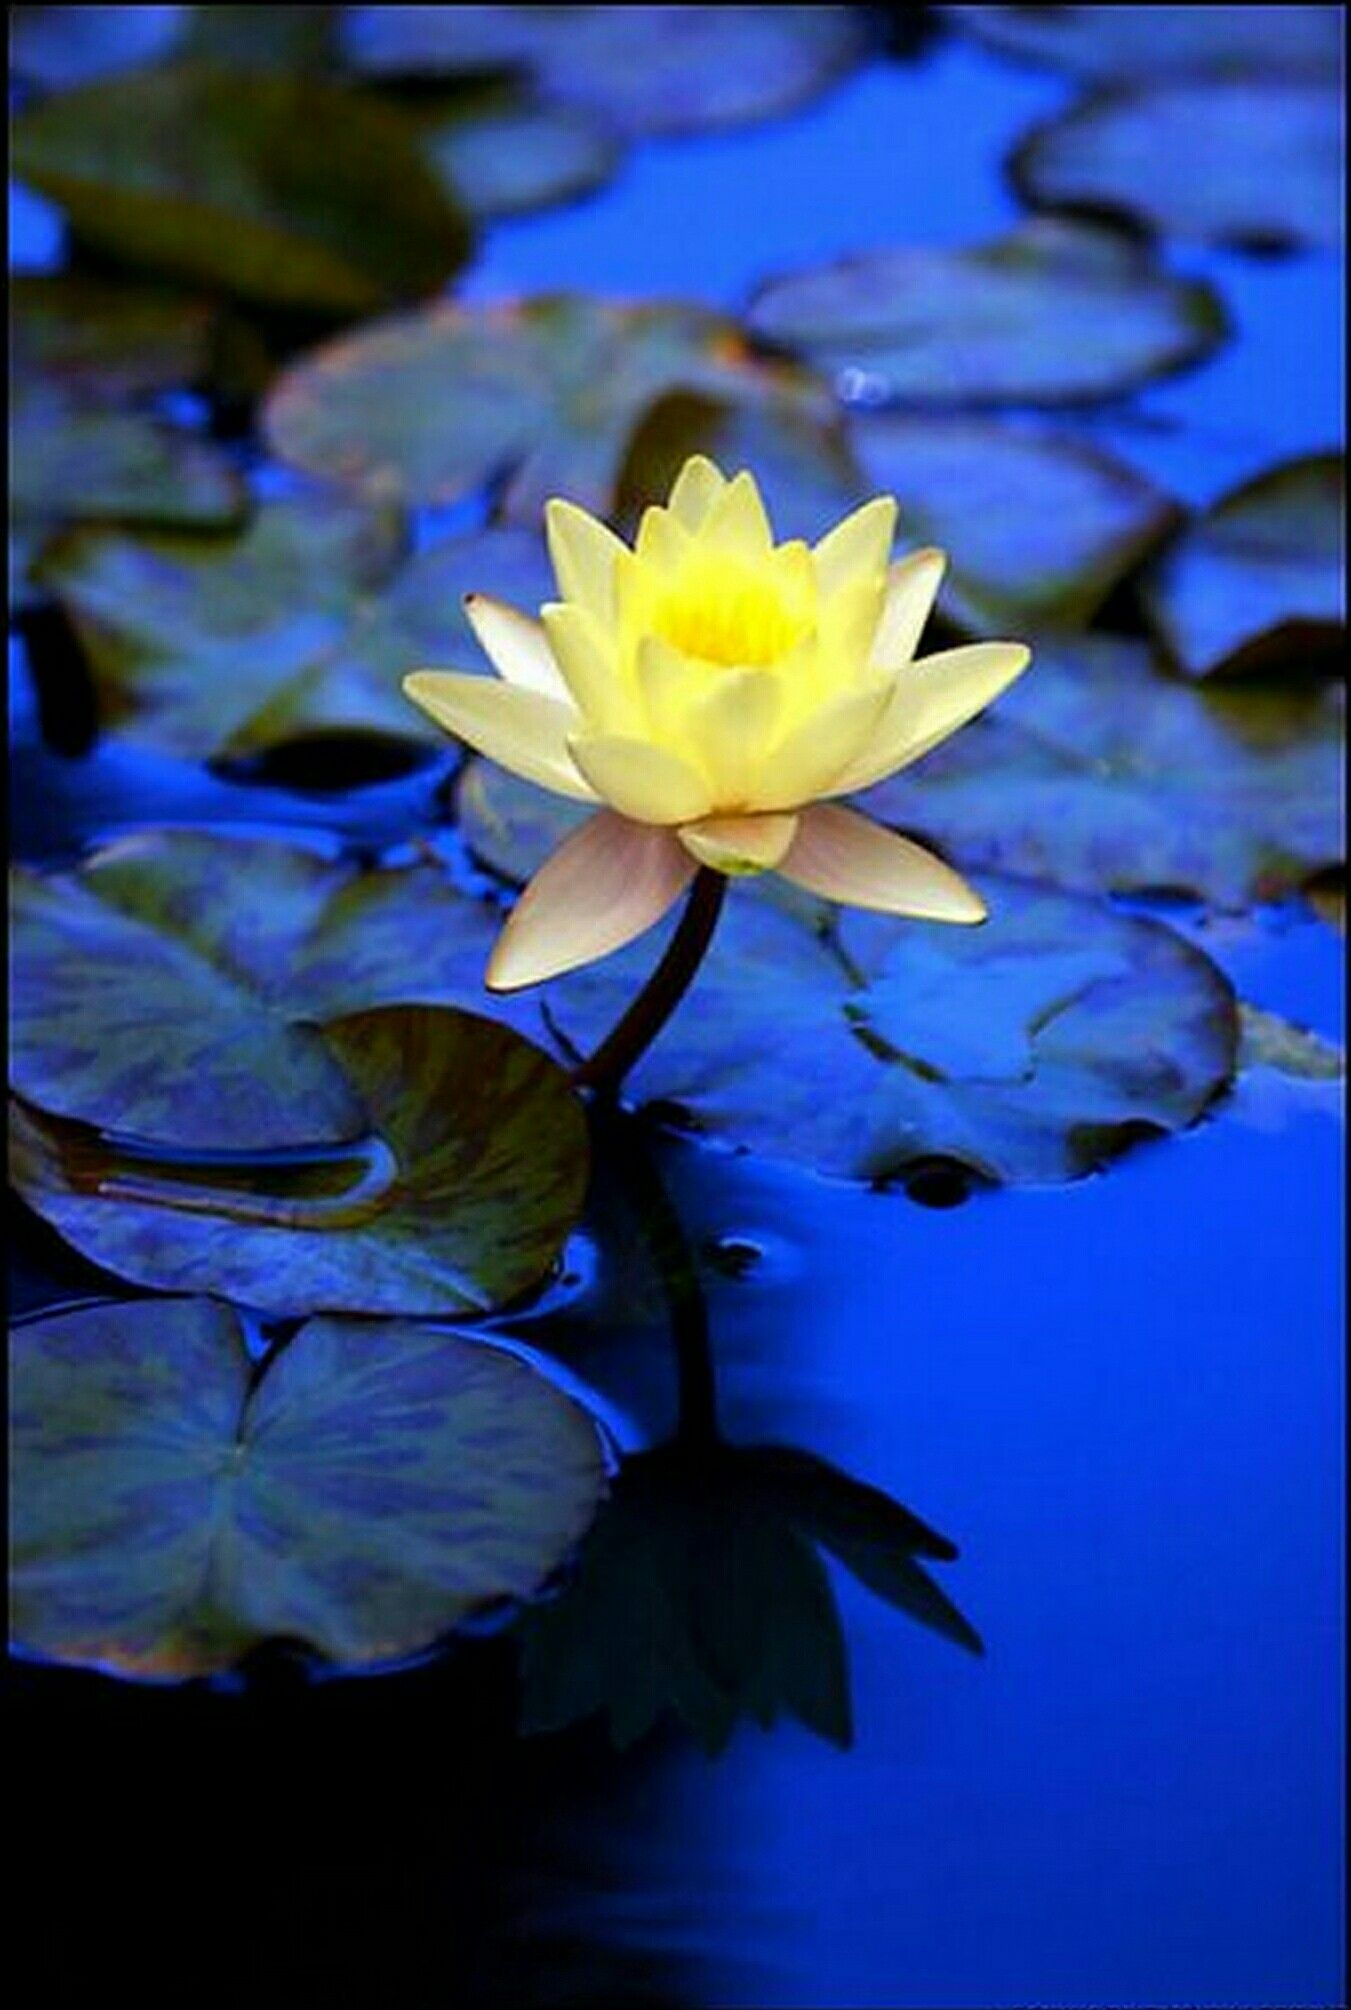 Pin by lilly issa on pinterest explore lotus flowers yellow flowers and more dhlflorist Images